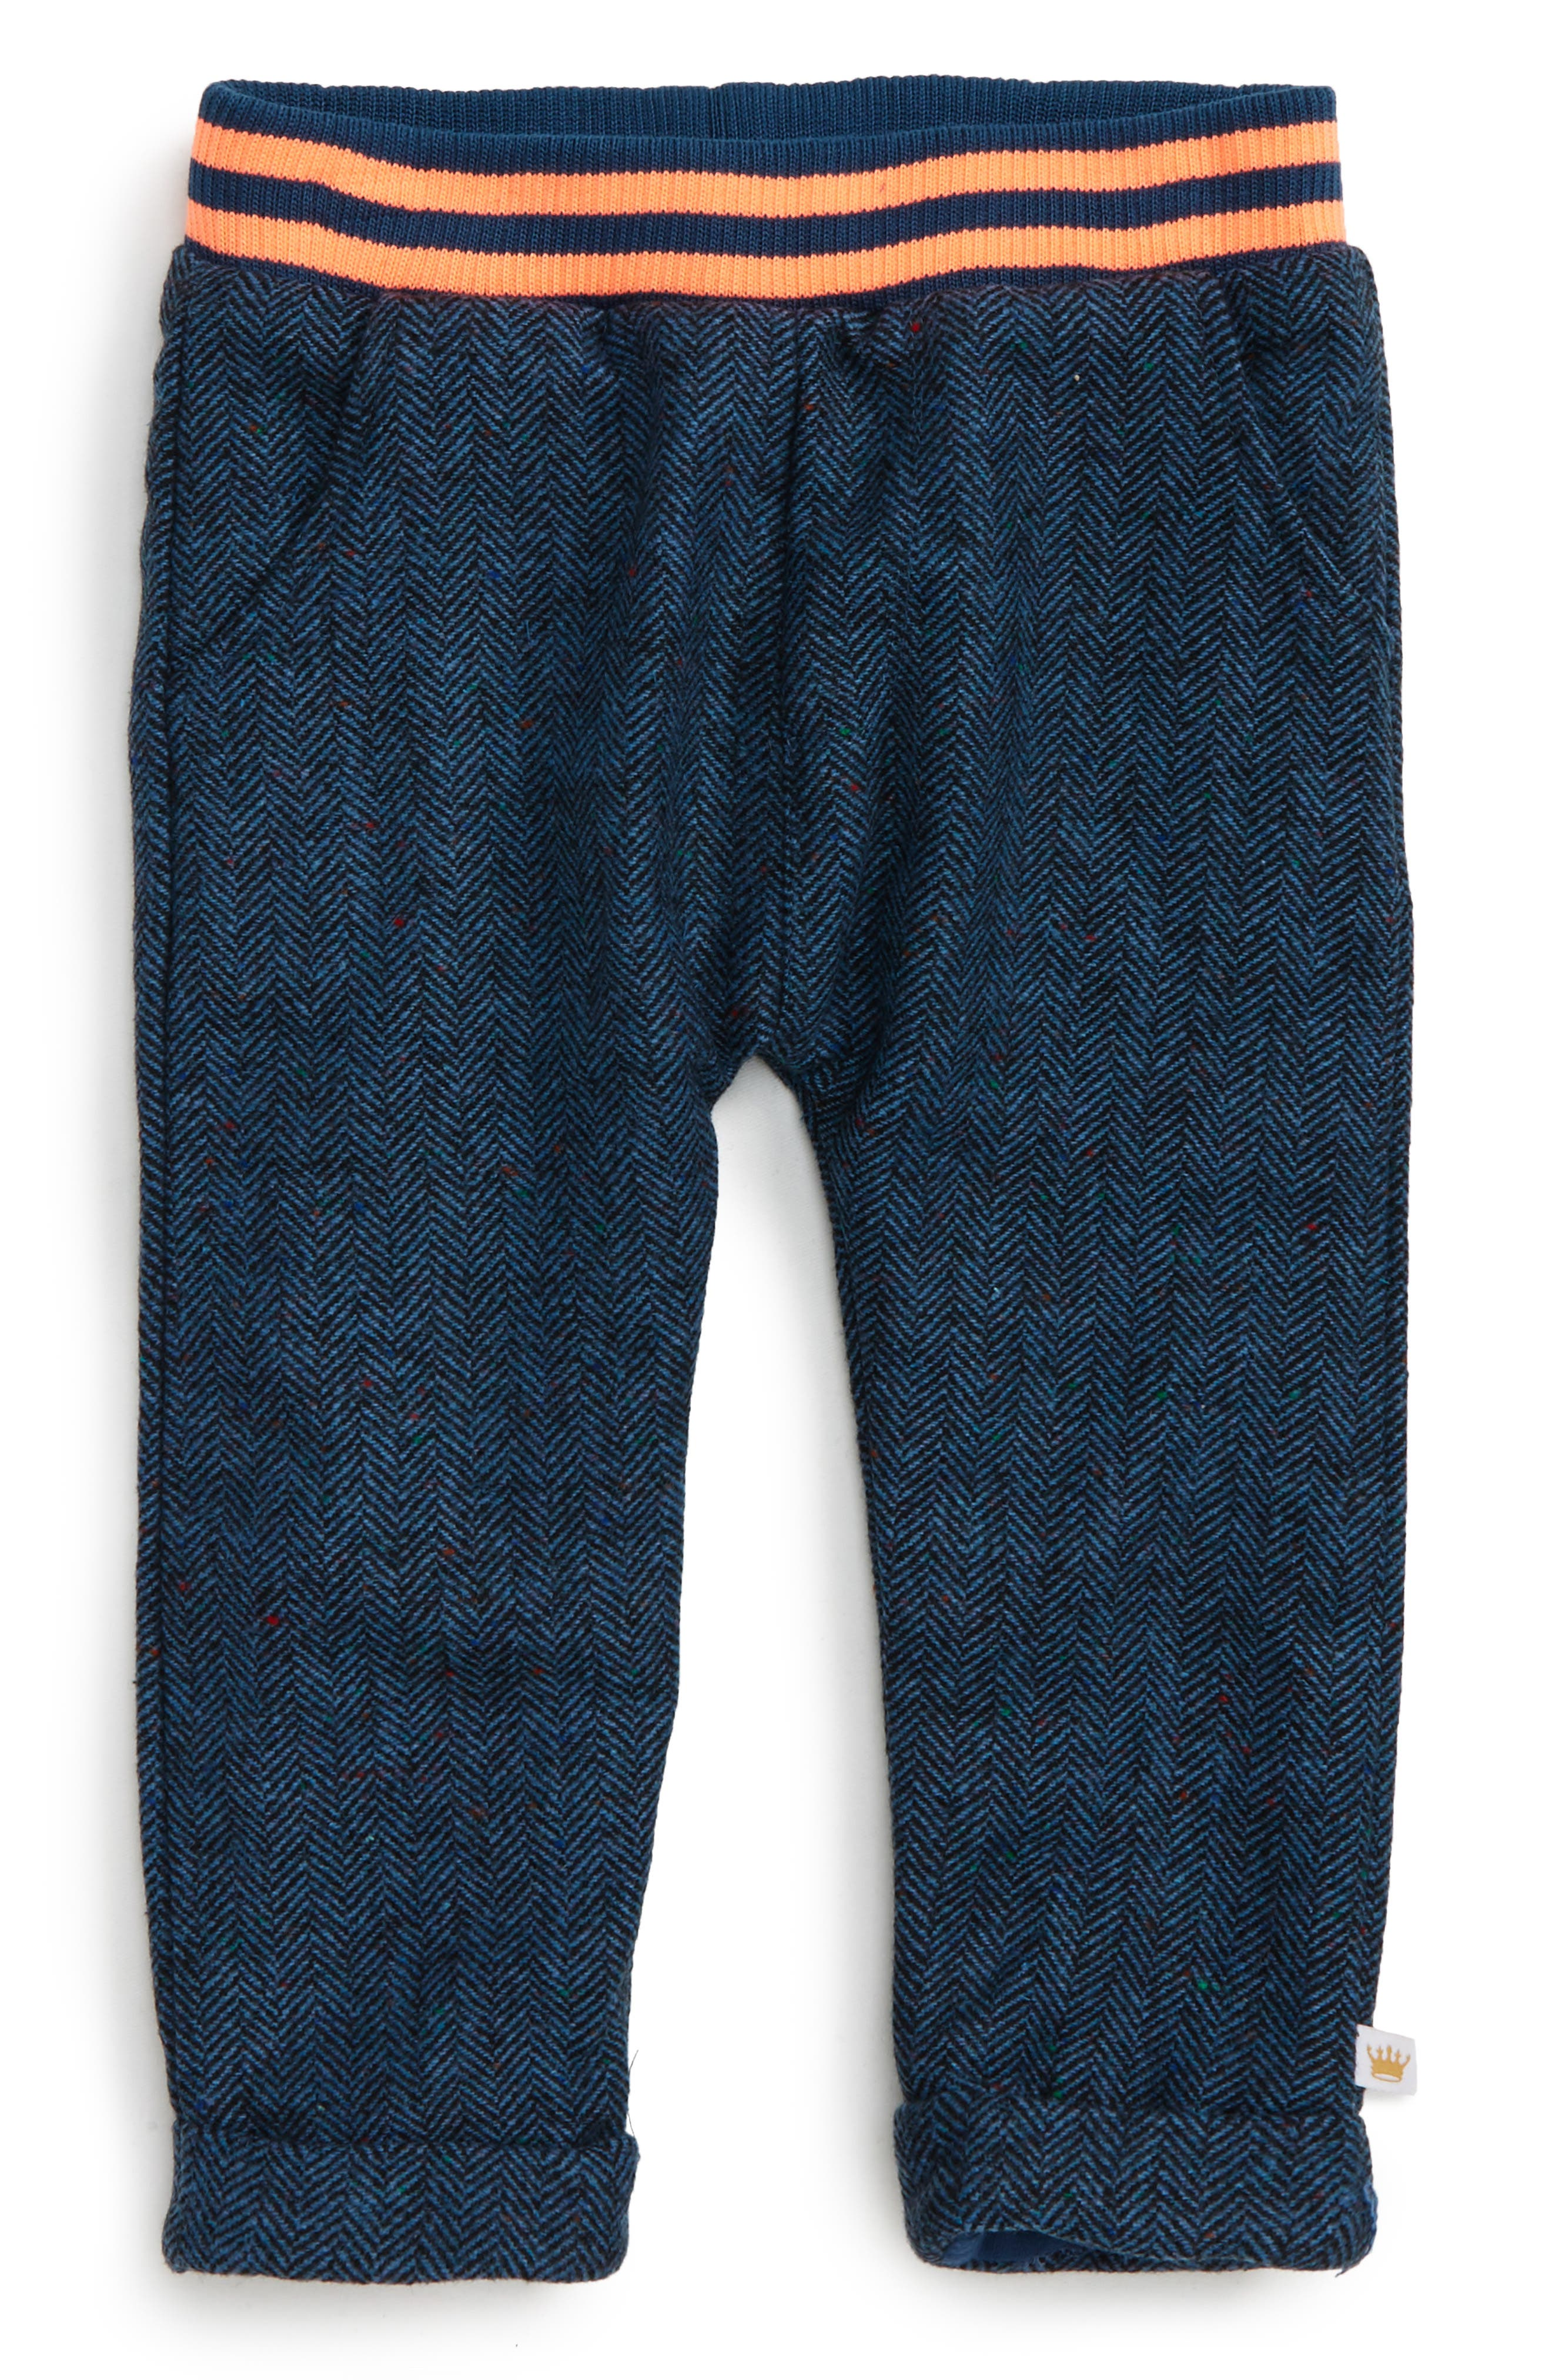 Twill Sweatpants,                         Main,                         color, Blue